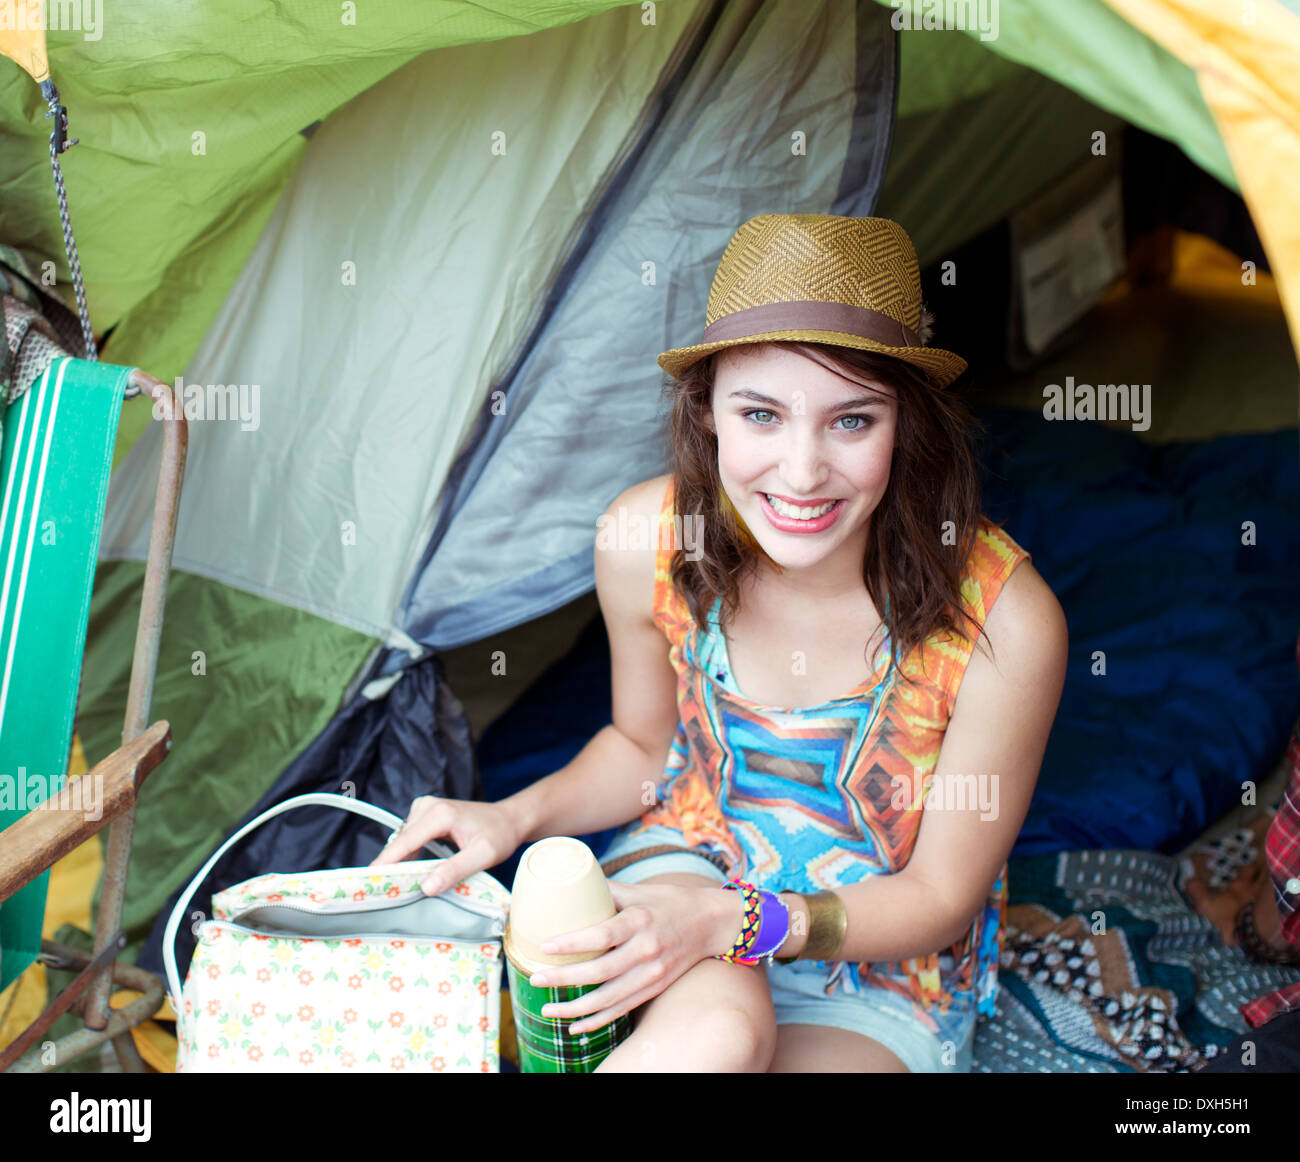 Portrait of smiling woman in tent at music festival - Stock Image